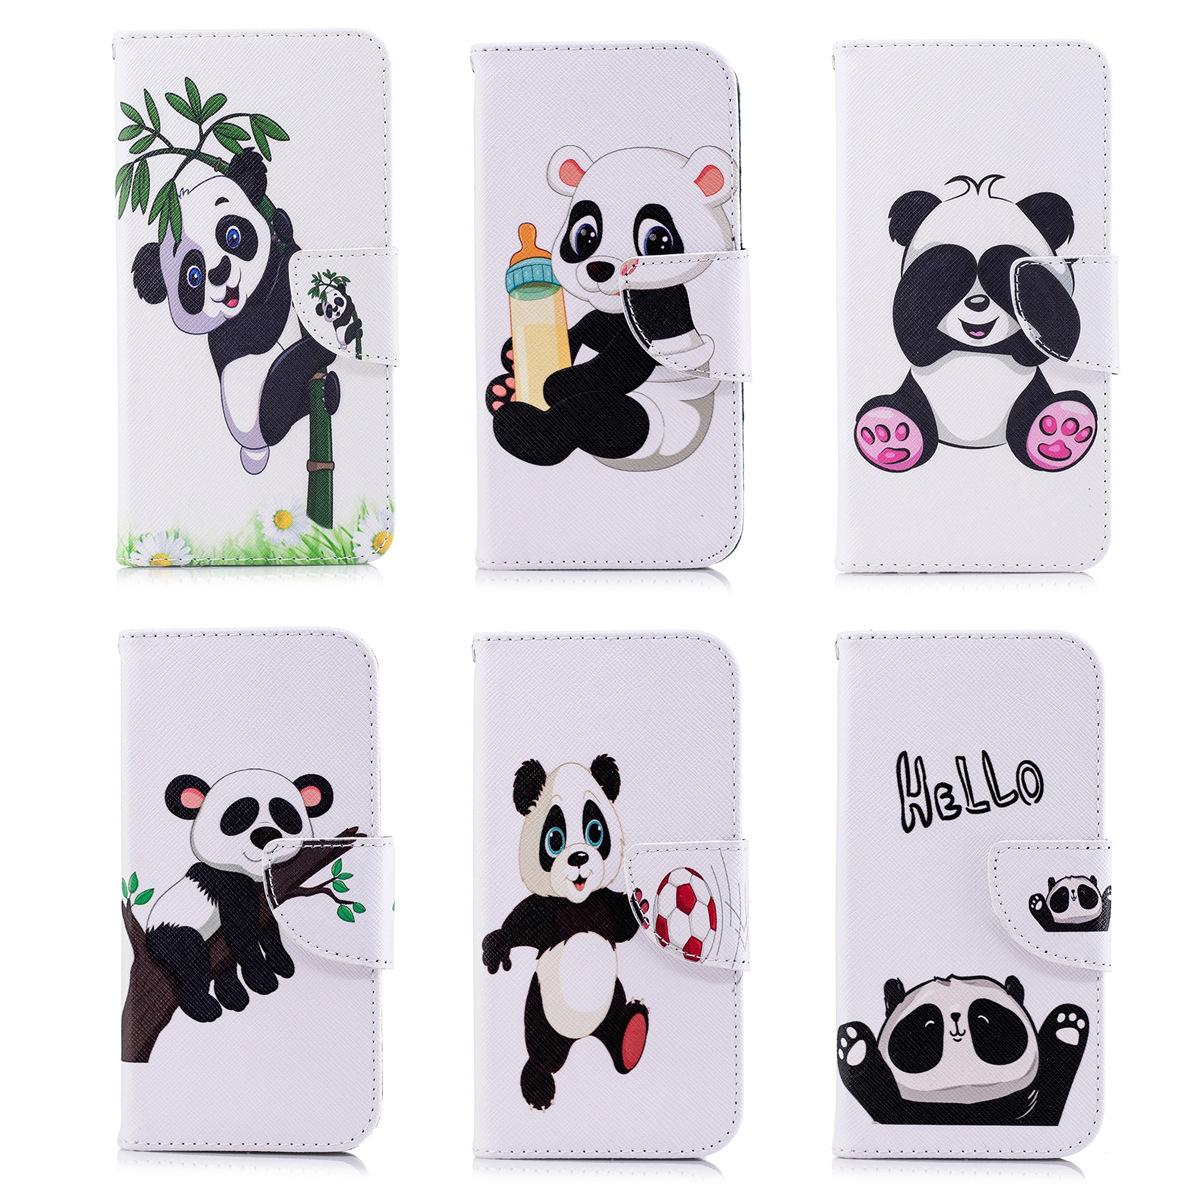 Lovely Panda Mobile Phone Flip Case Stand PU Leather Cover with Wallet Card Money Holders (68 Models for Option)